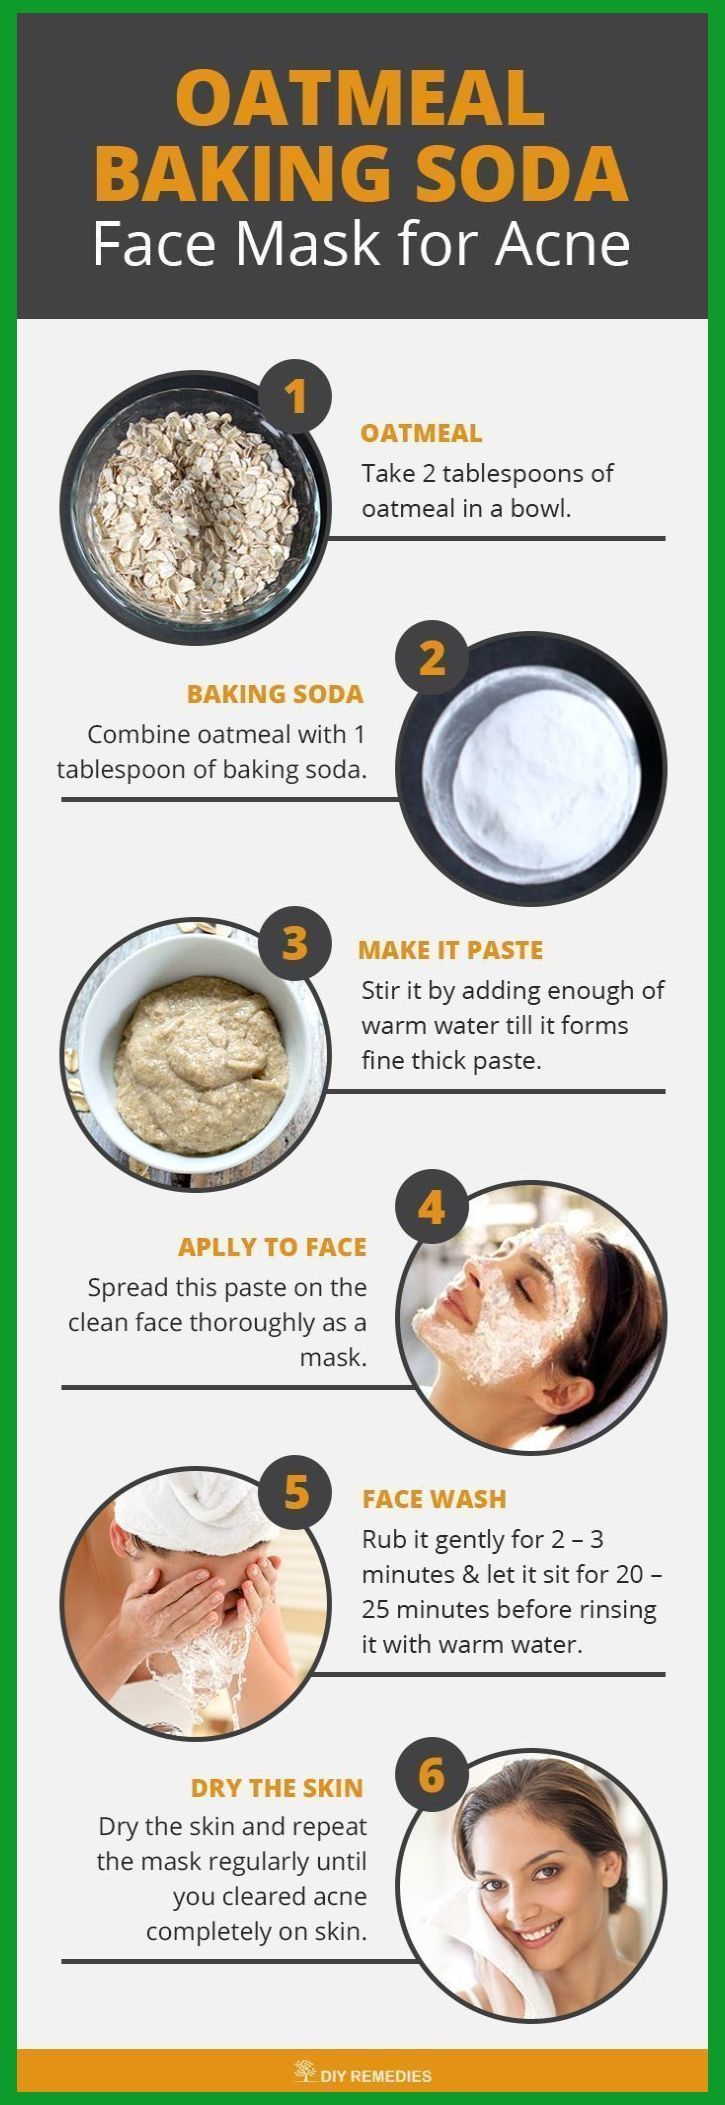 Skin bleaching before and after diy face masks 59+ Ideas